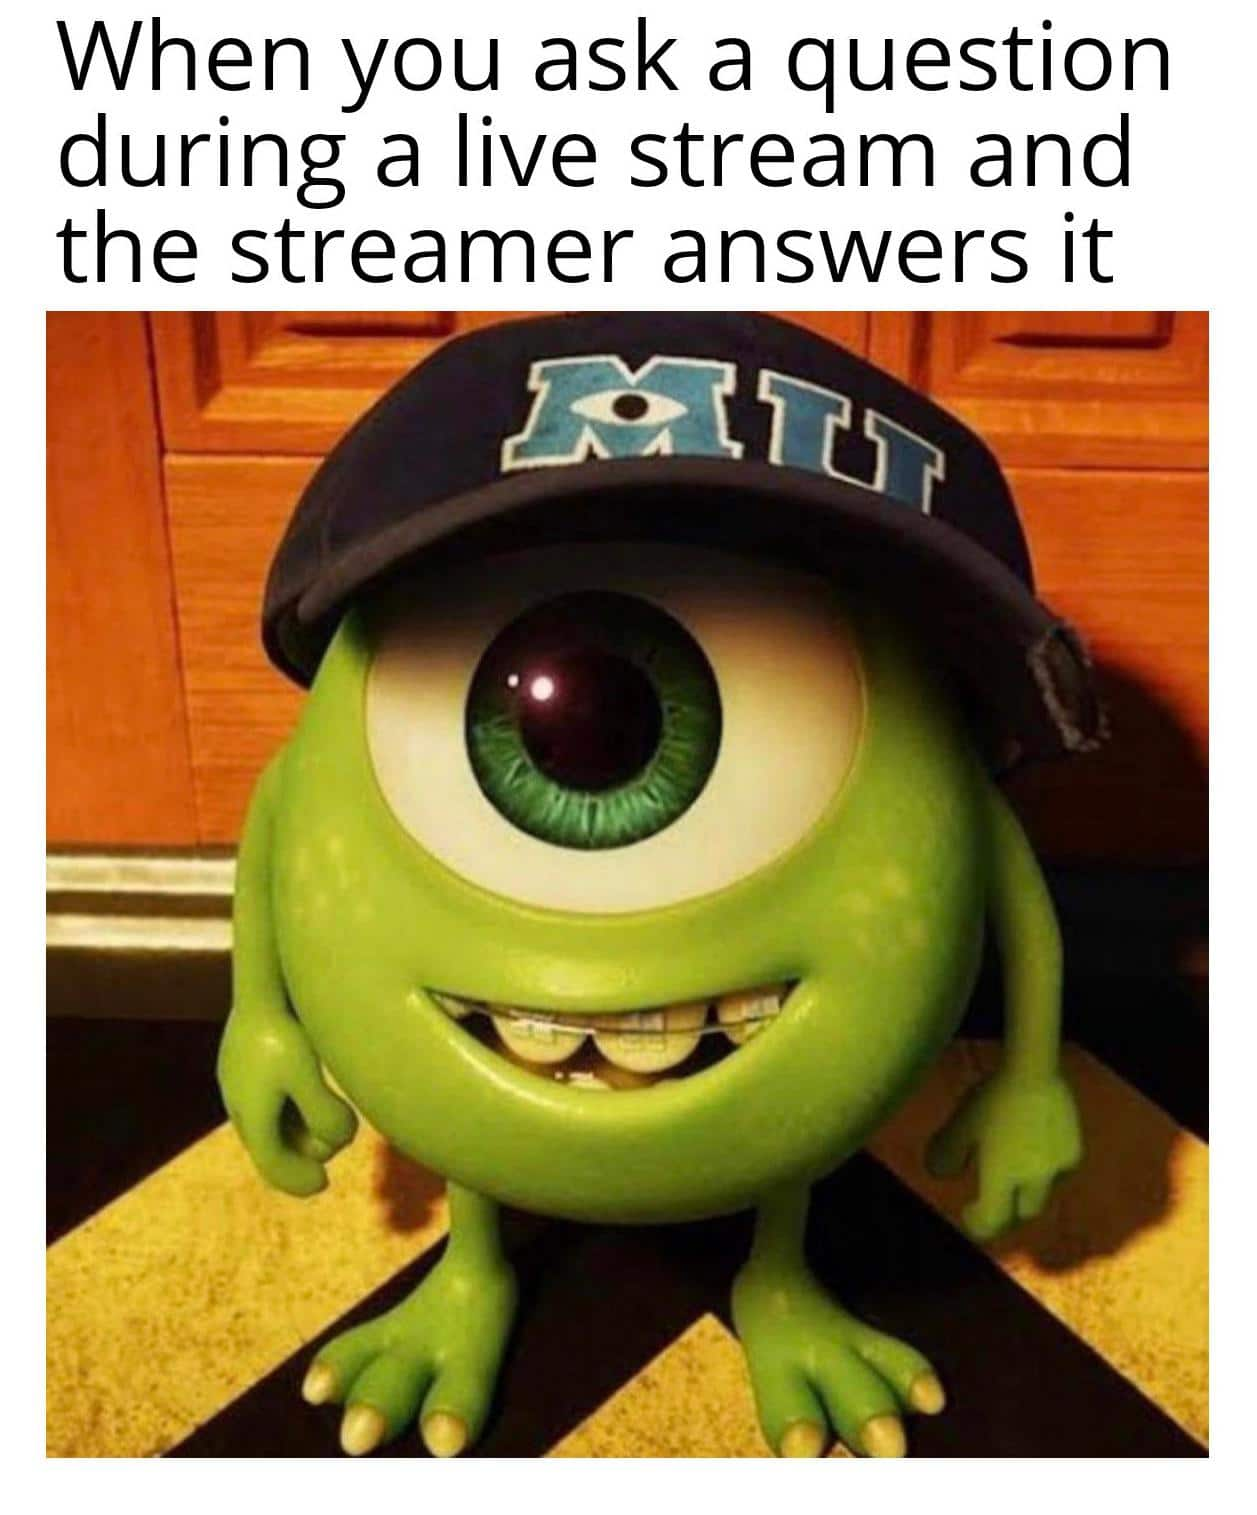 Dank Meme, Livestream, Twitch, Monsters Inc, Mike Wazowski wearing a hat dank-memes cute text: When you ask a question during a live stream and the streamer answers it